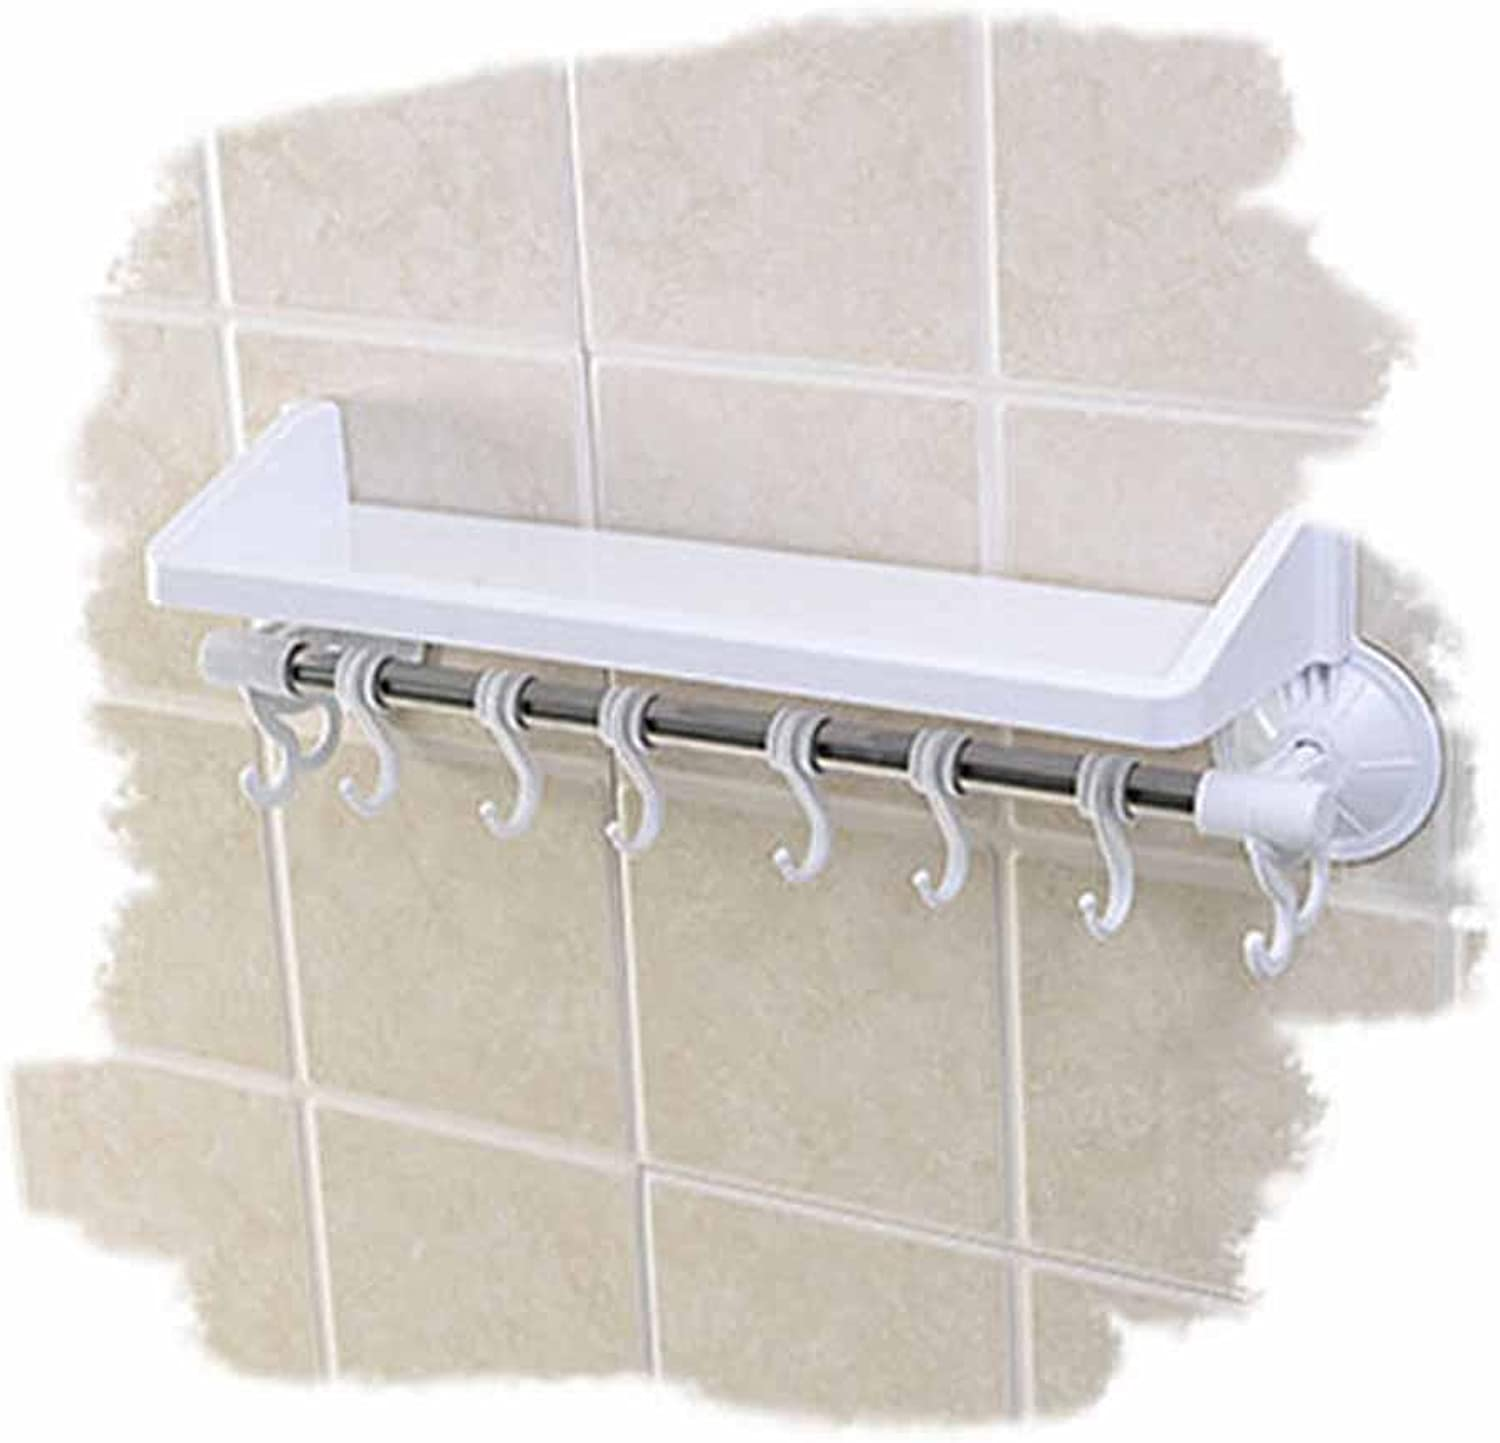 SSBY Modern bathroom wall-mounted suction cup rack, single tier storage rack free punch toilet-bathroom corner shelf